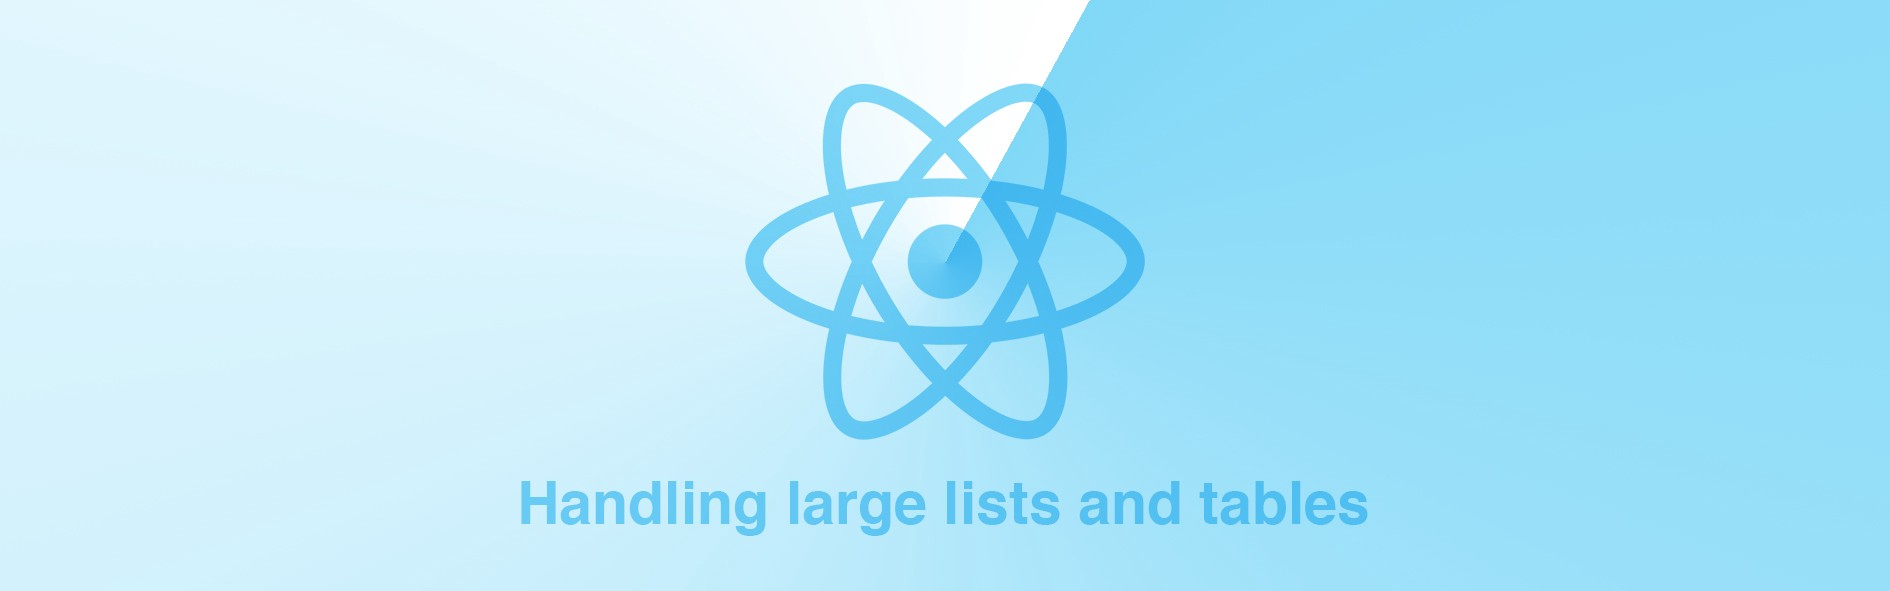 Handling large lists and tables in react - ITNEXT